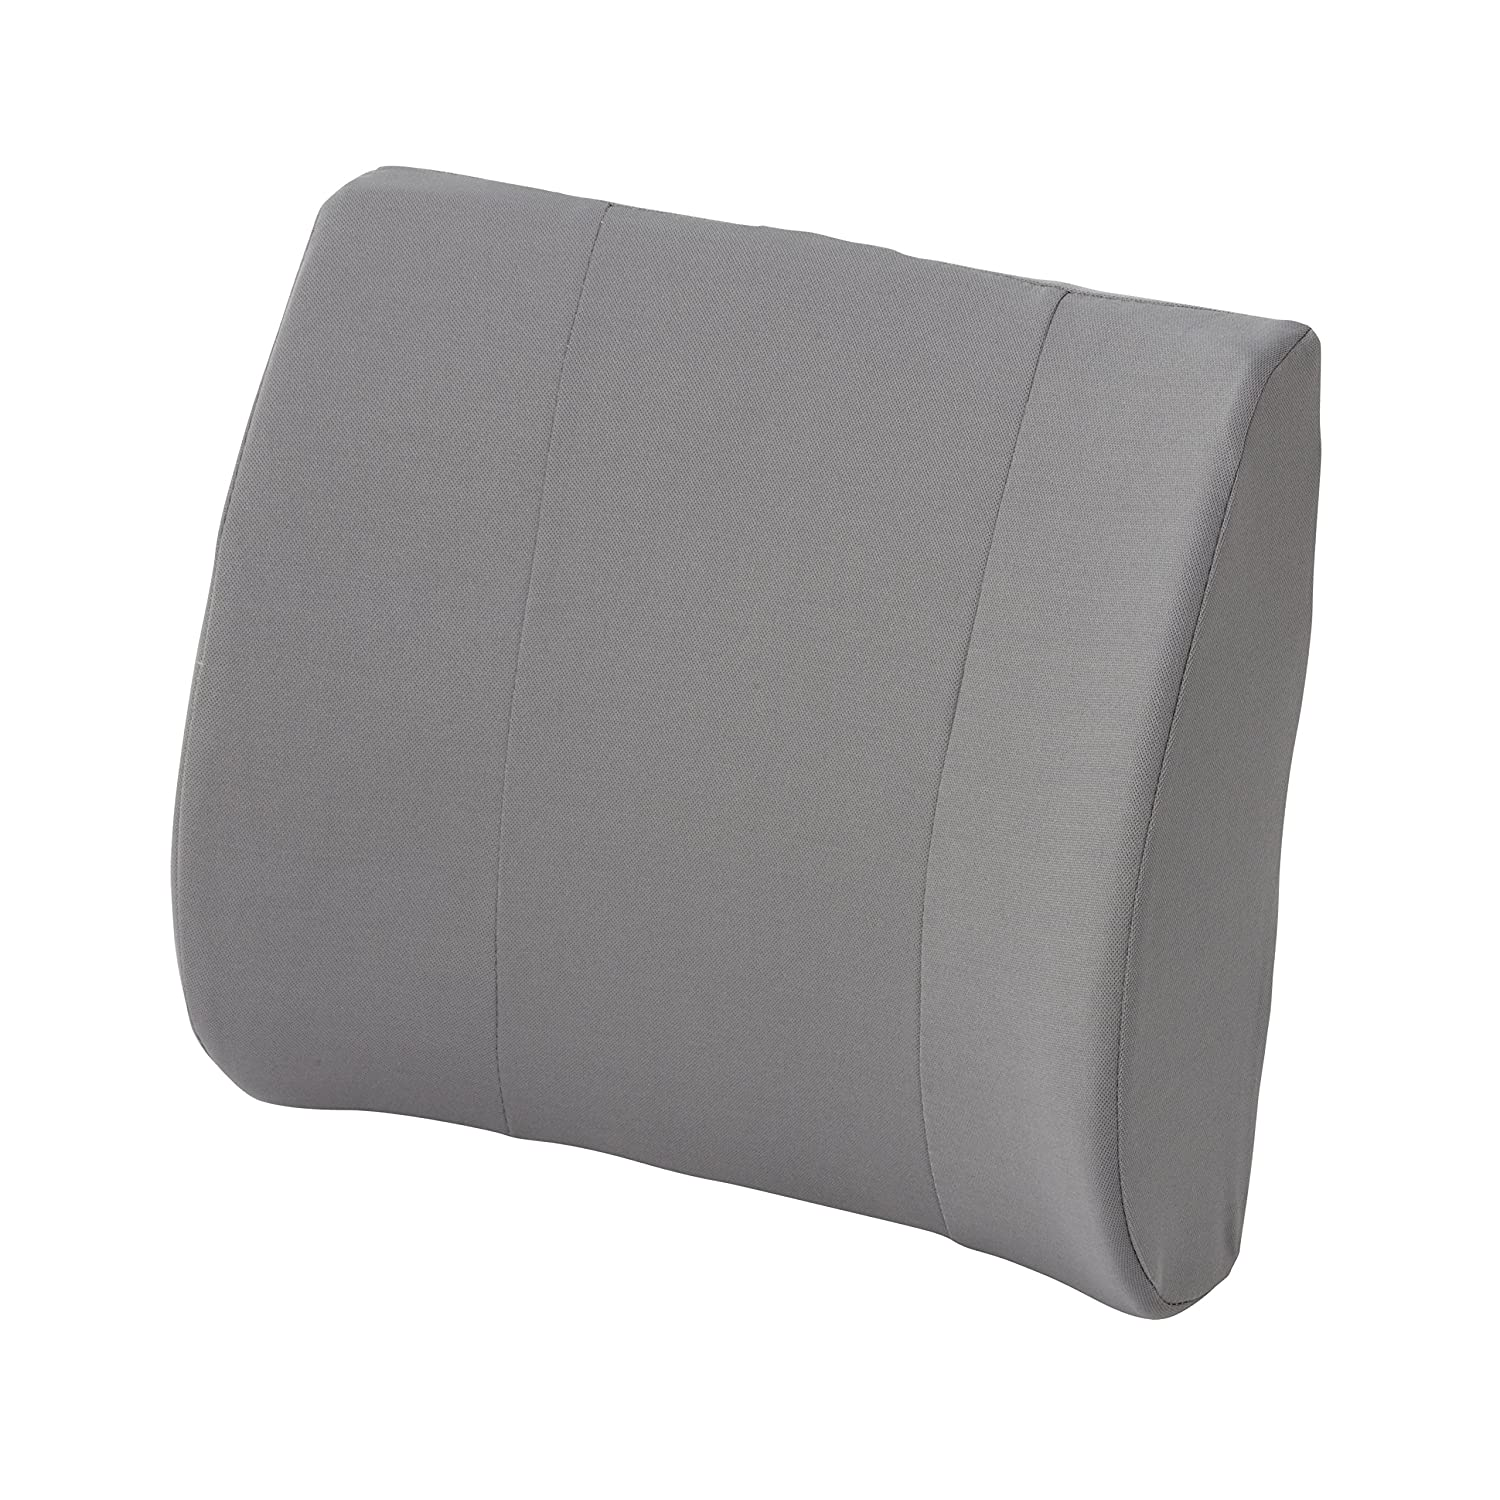 Lumbar Back Support for Office Chair - Chair Back Support Relax-A-Bac Lumbar Cushion, Lower Back Pillow with Wooden Support Board and Strap, Grey